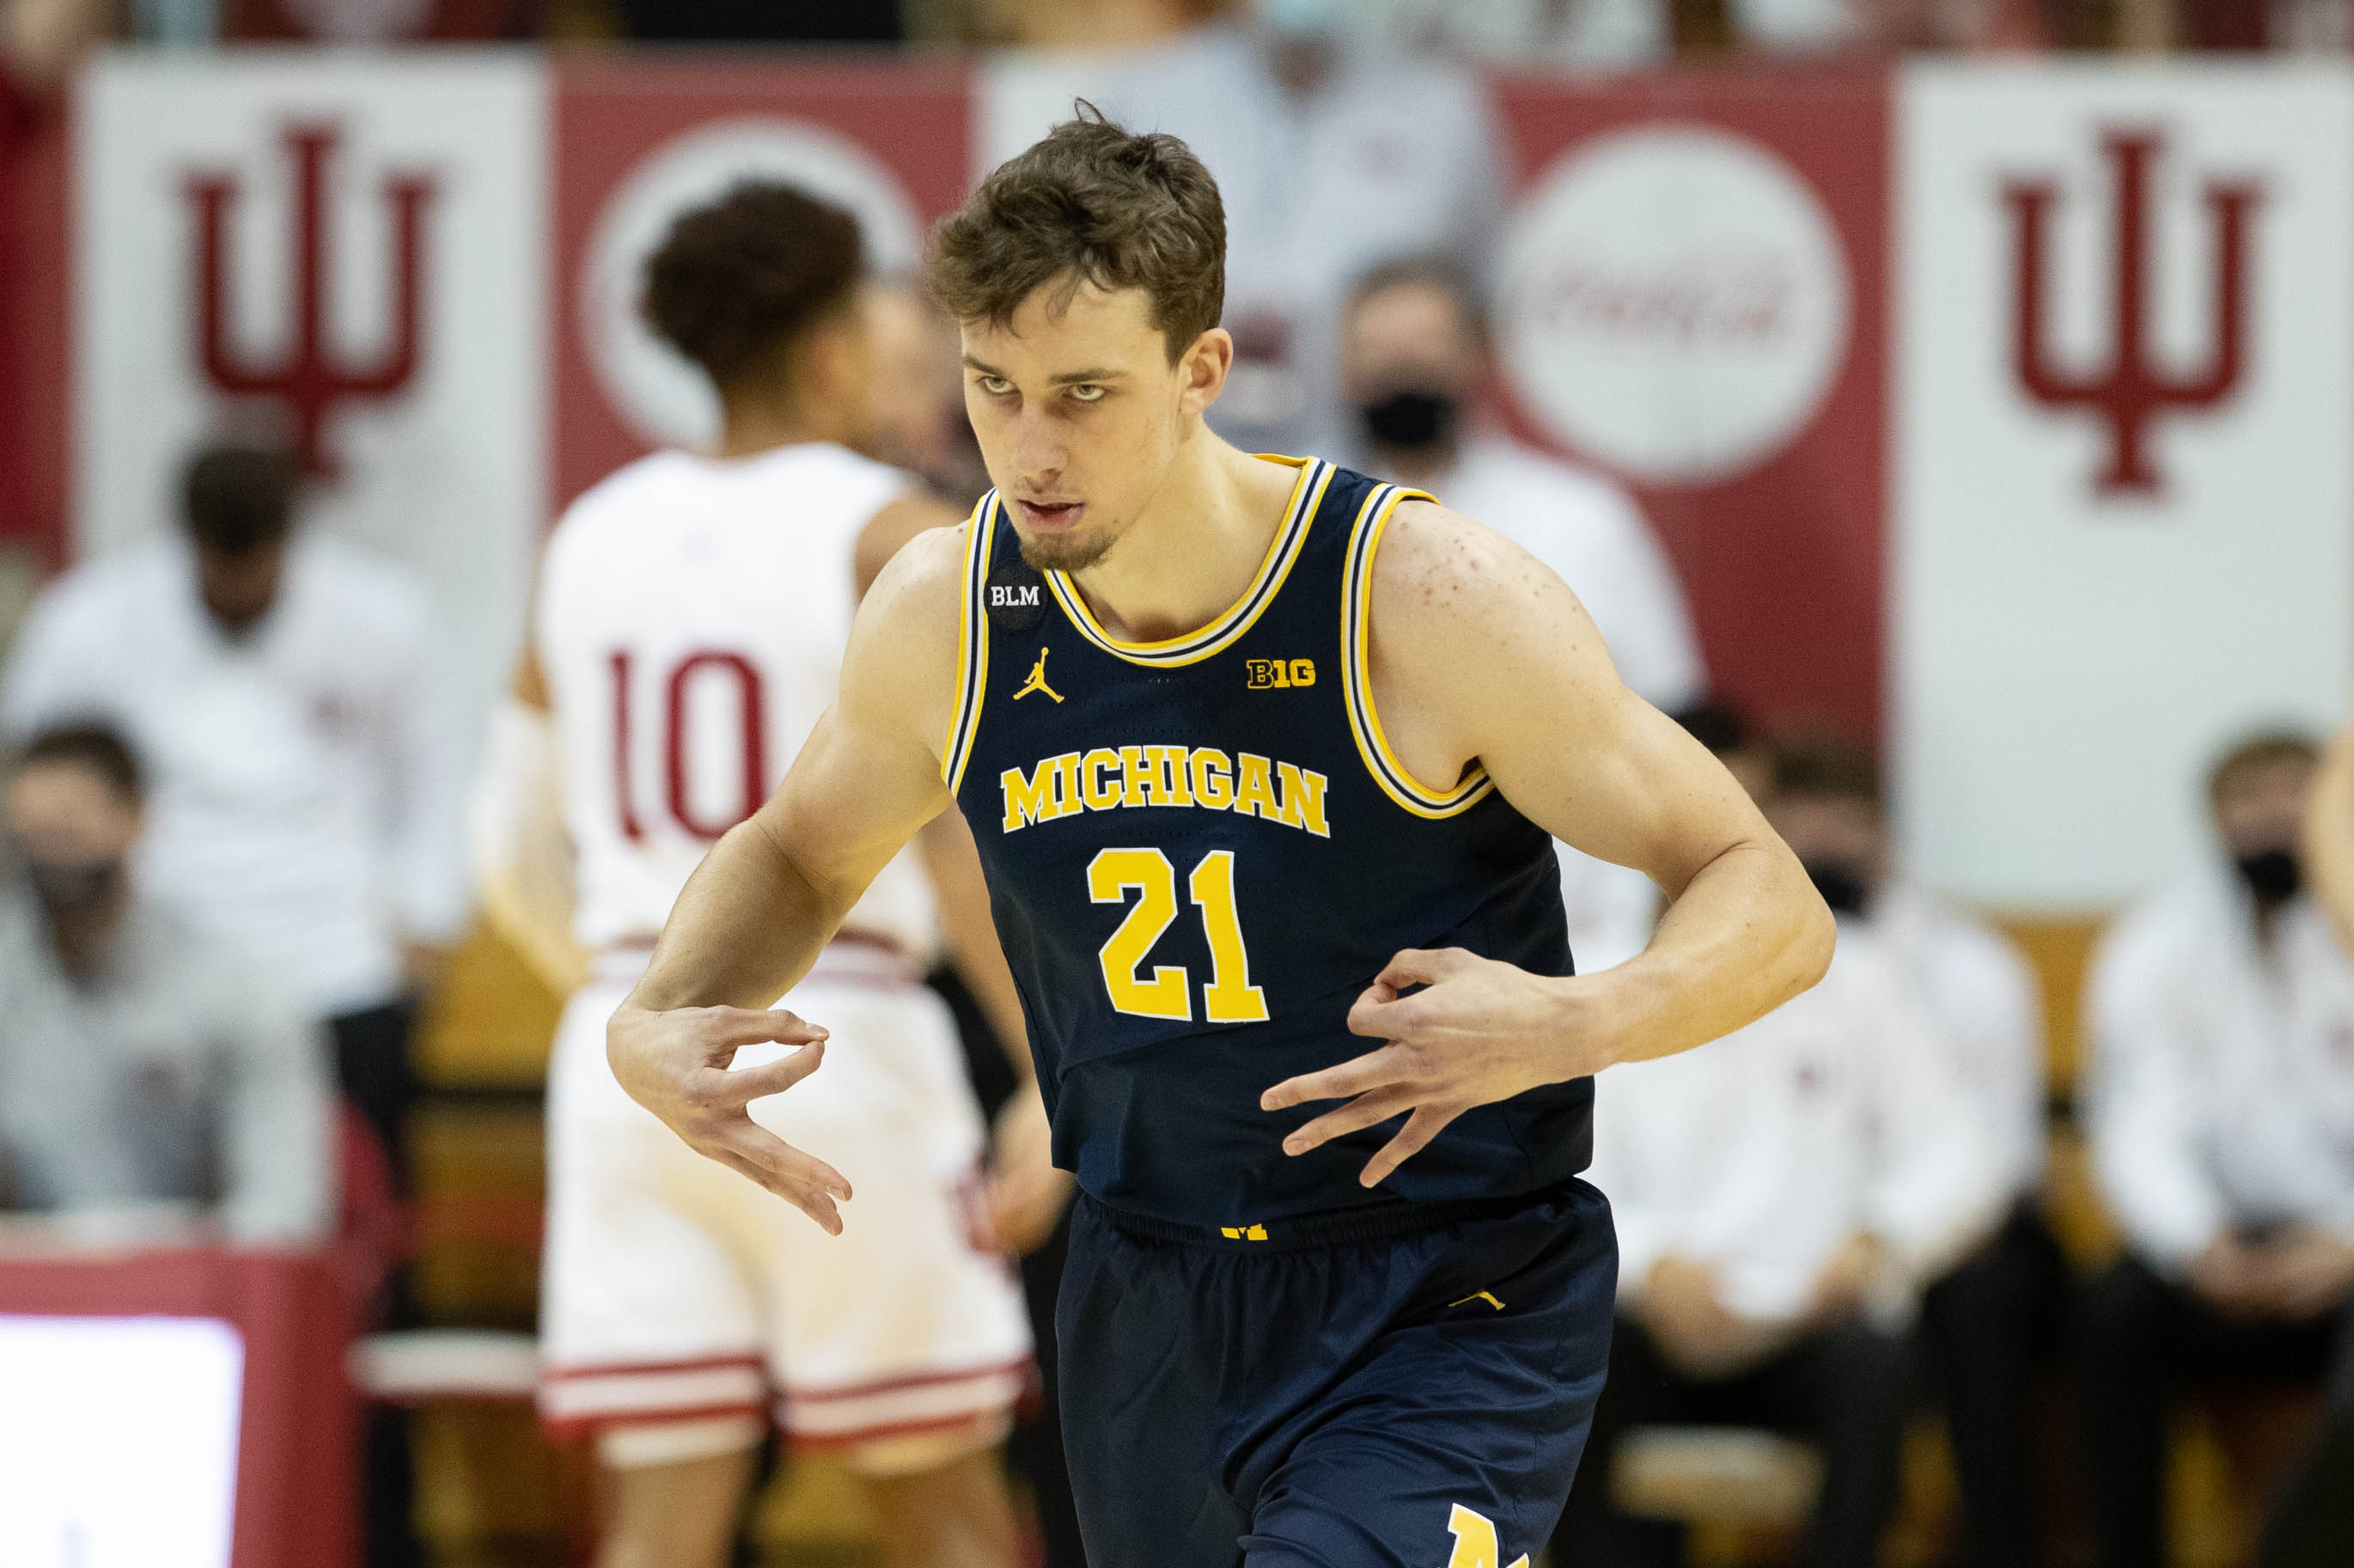 Feb 27, 2021; Bloomington, Indiana, USA; Michigan Wolverines guard Franz Wagner (21) celebrates a made three point basket in the first half against the Indiana Hoosiers at Simon Skjodt Assembly Hall.